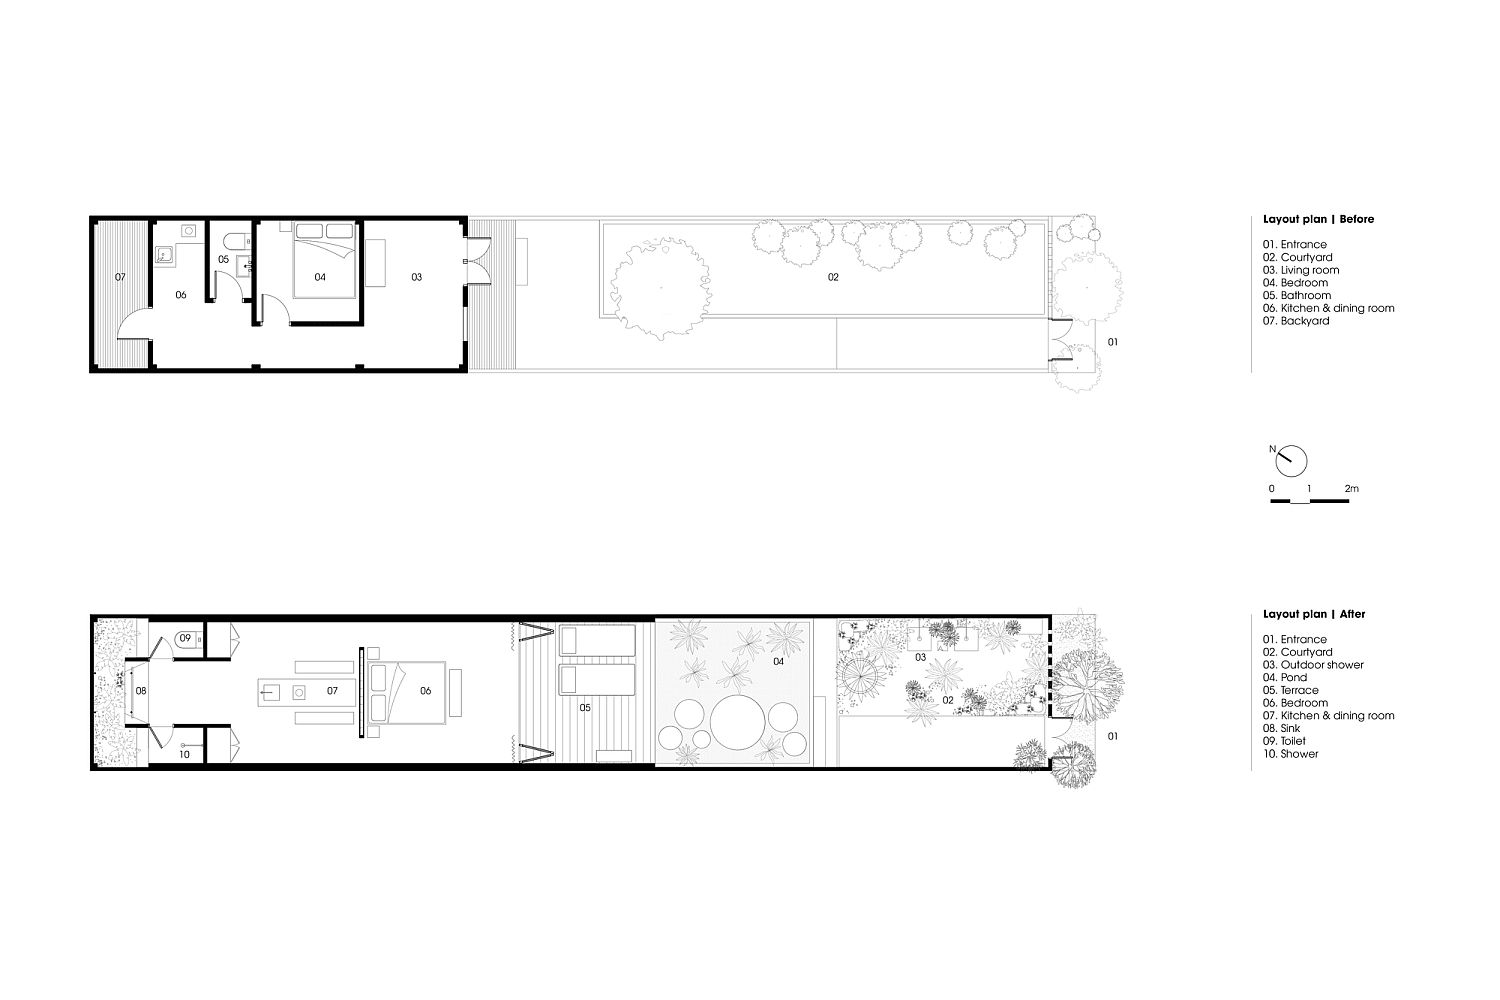 Floor plan of the Hill Lodge before and after conversion